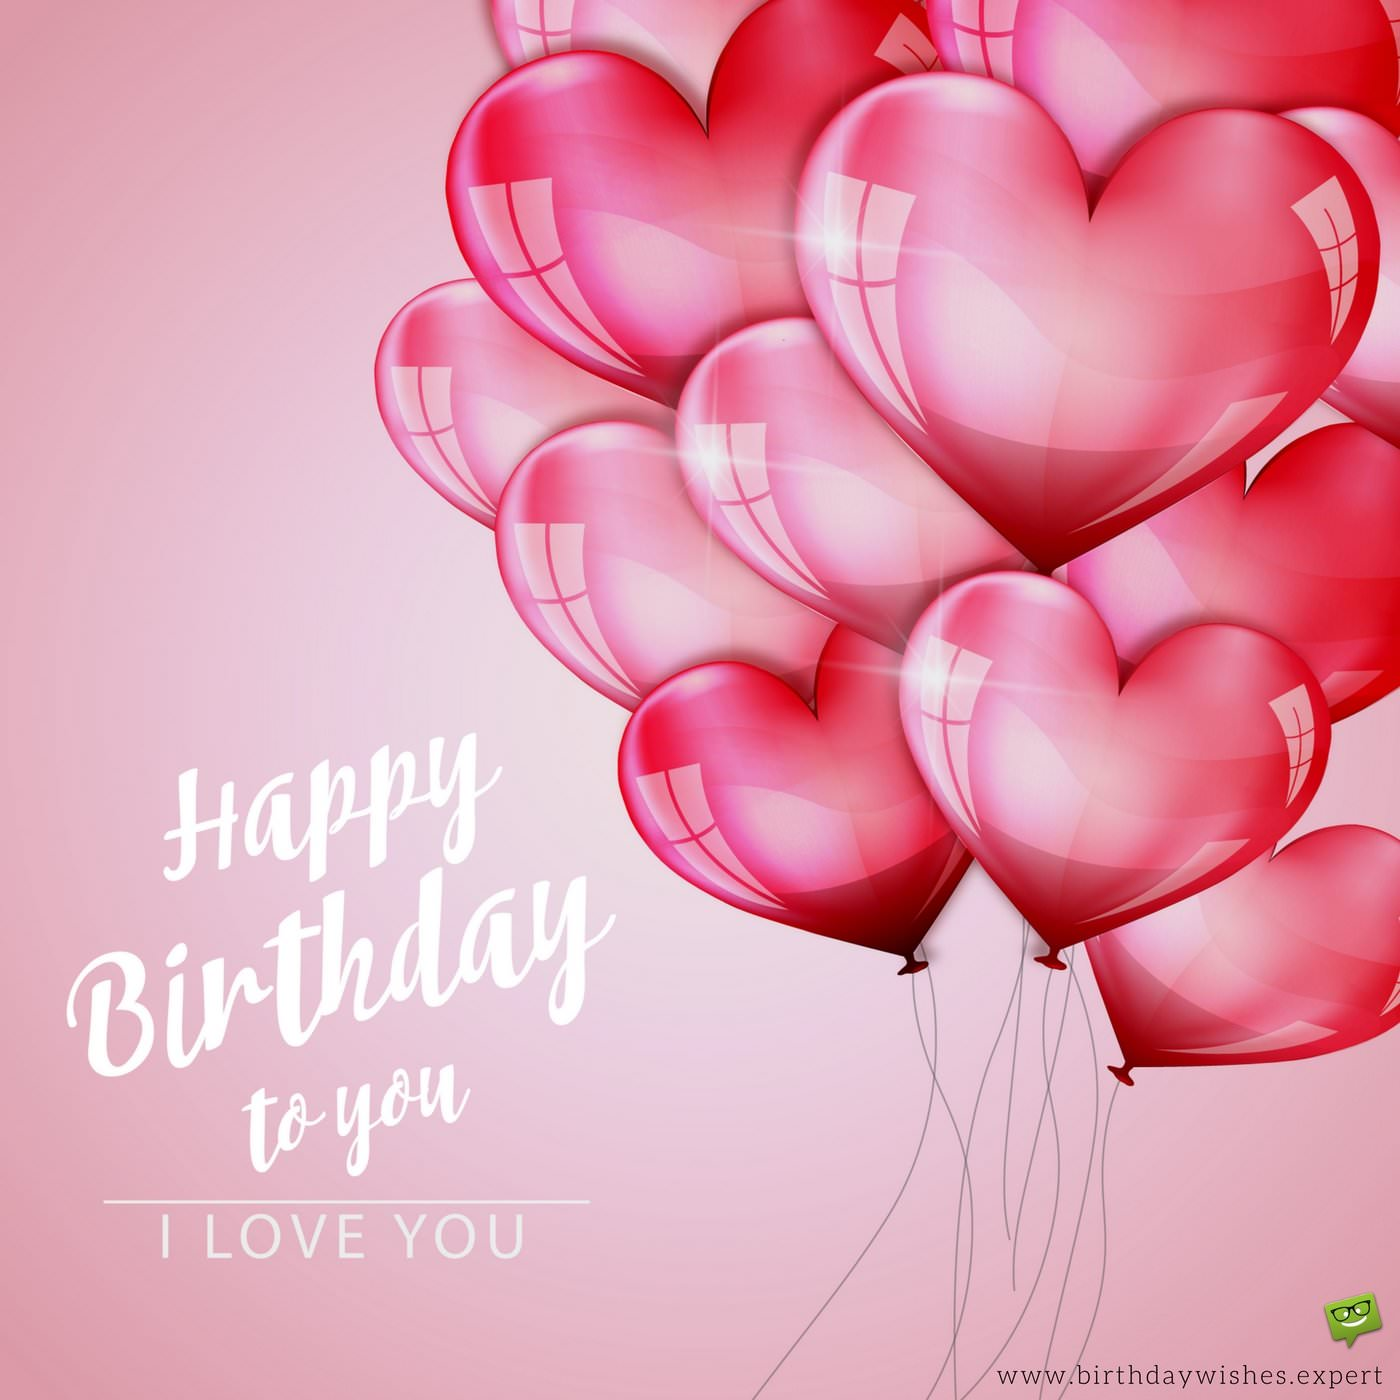 Perky Happy Birthday To I Love My Day Birthday Wishes Your Girlfriend Happy Belated Birthday Lady Happy Birthday Lady Cake gifts Happy Birthday Sweet Lady